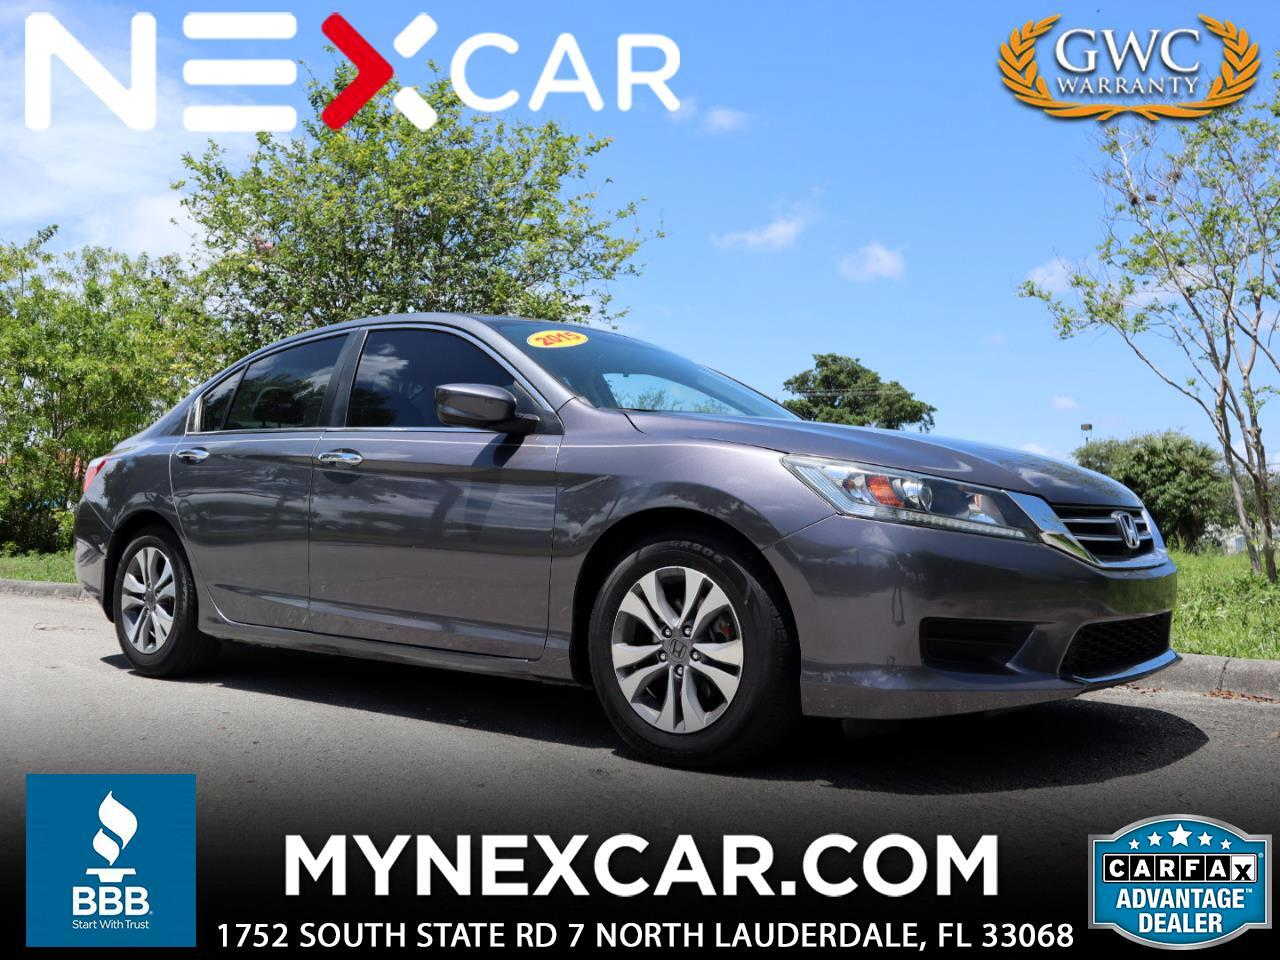 Honda Accord Sedan 4dr I4 CVT LX 2015